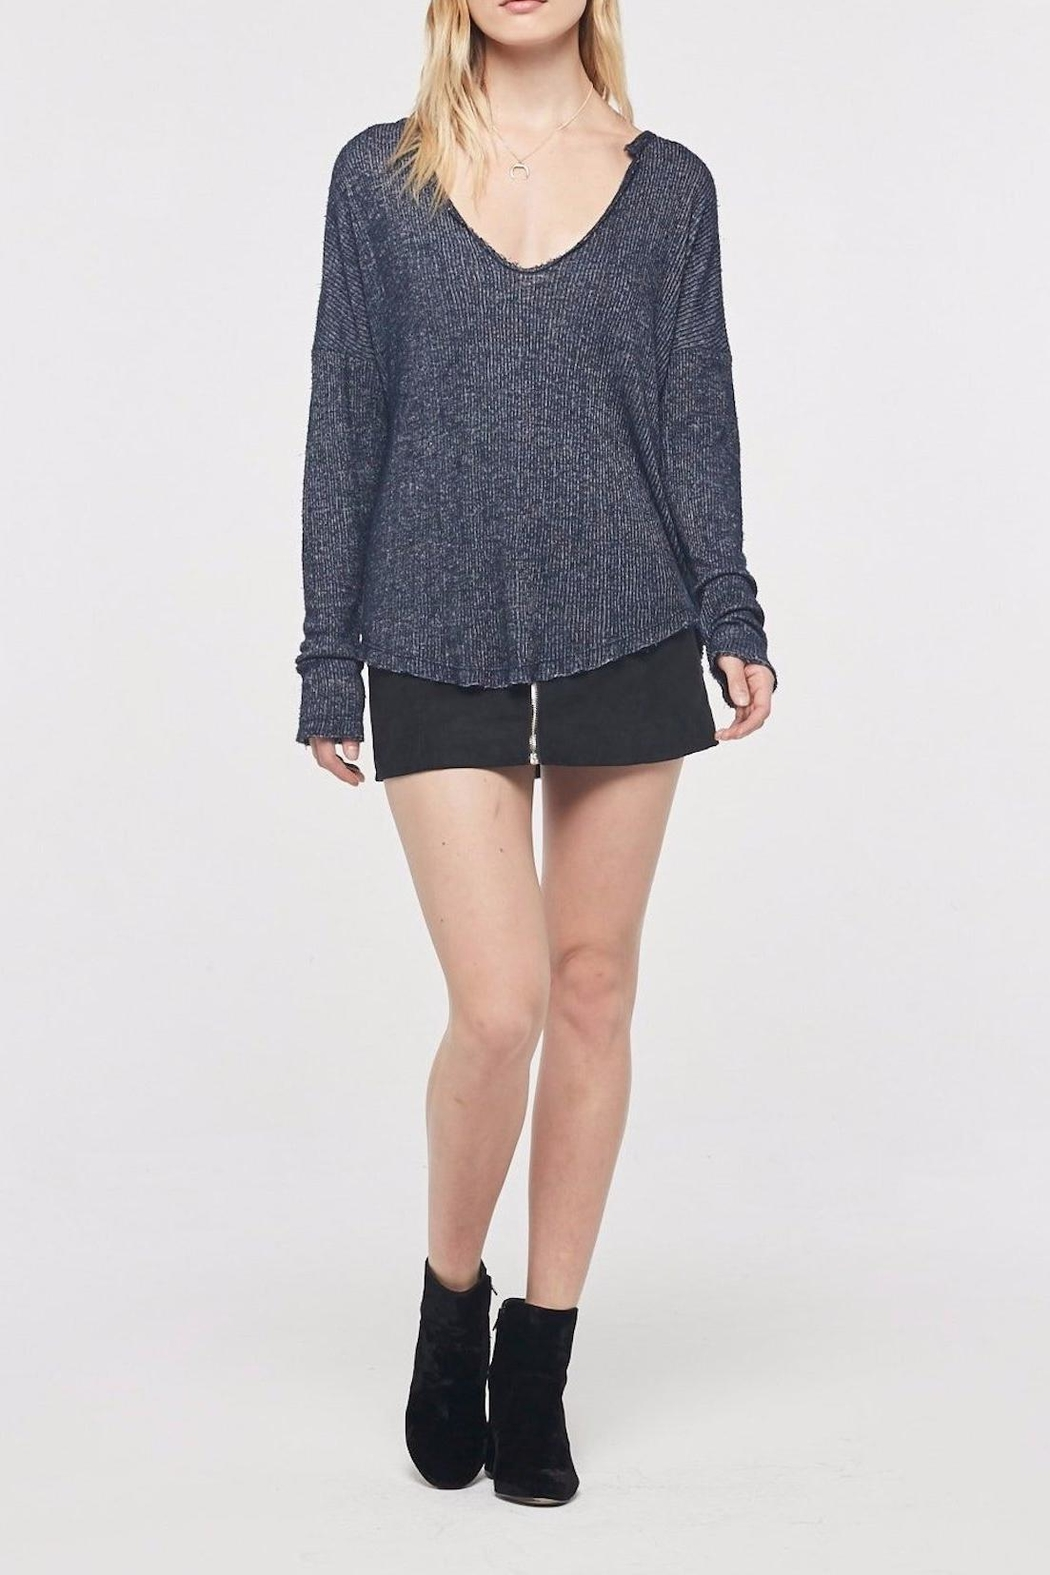 Project Social T Anouk Longsleeve Tee - Front Full Image